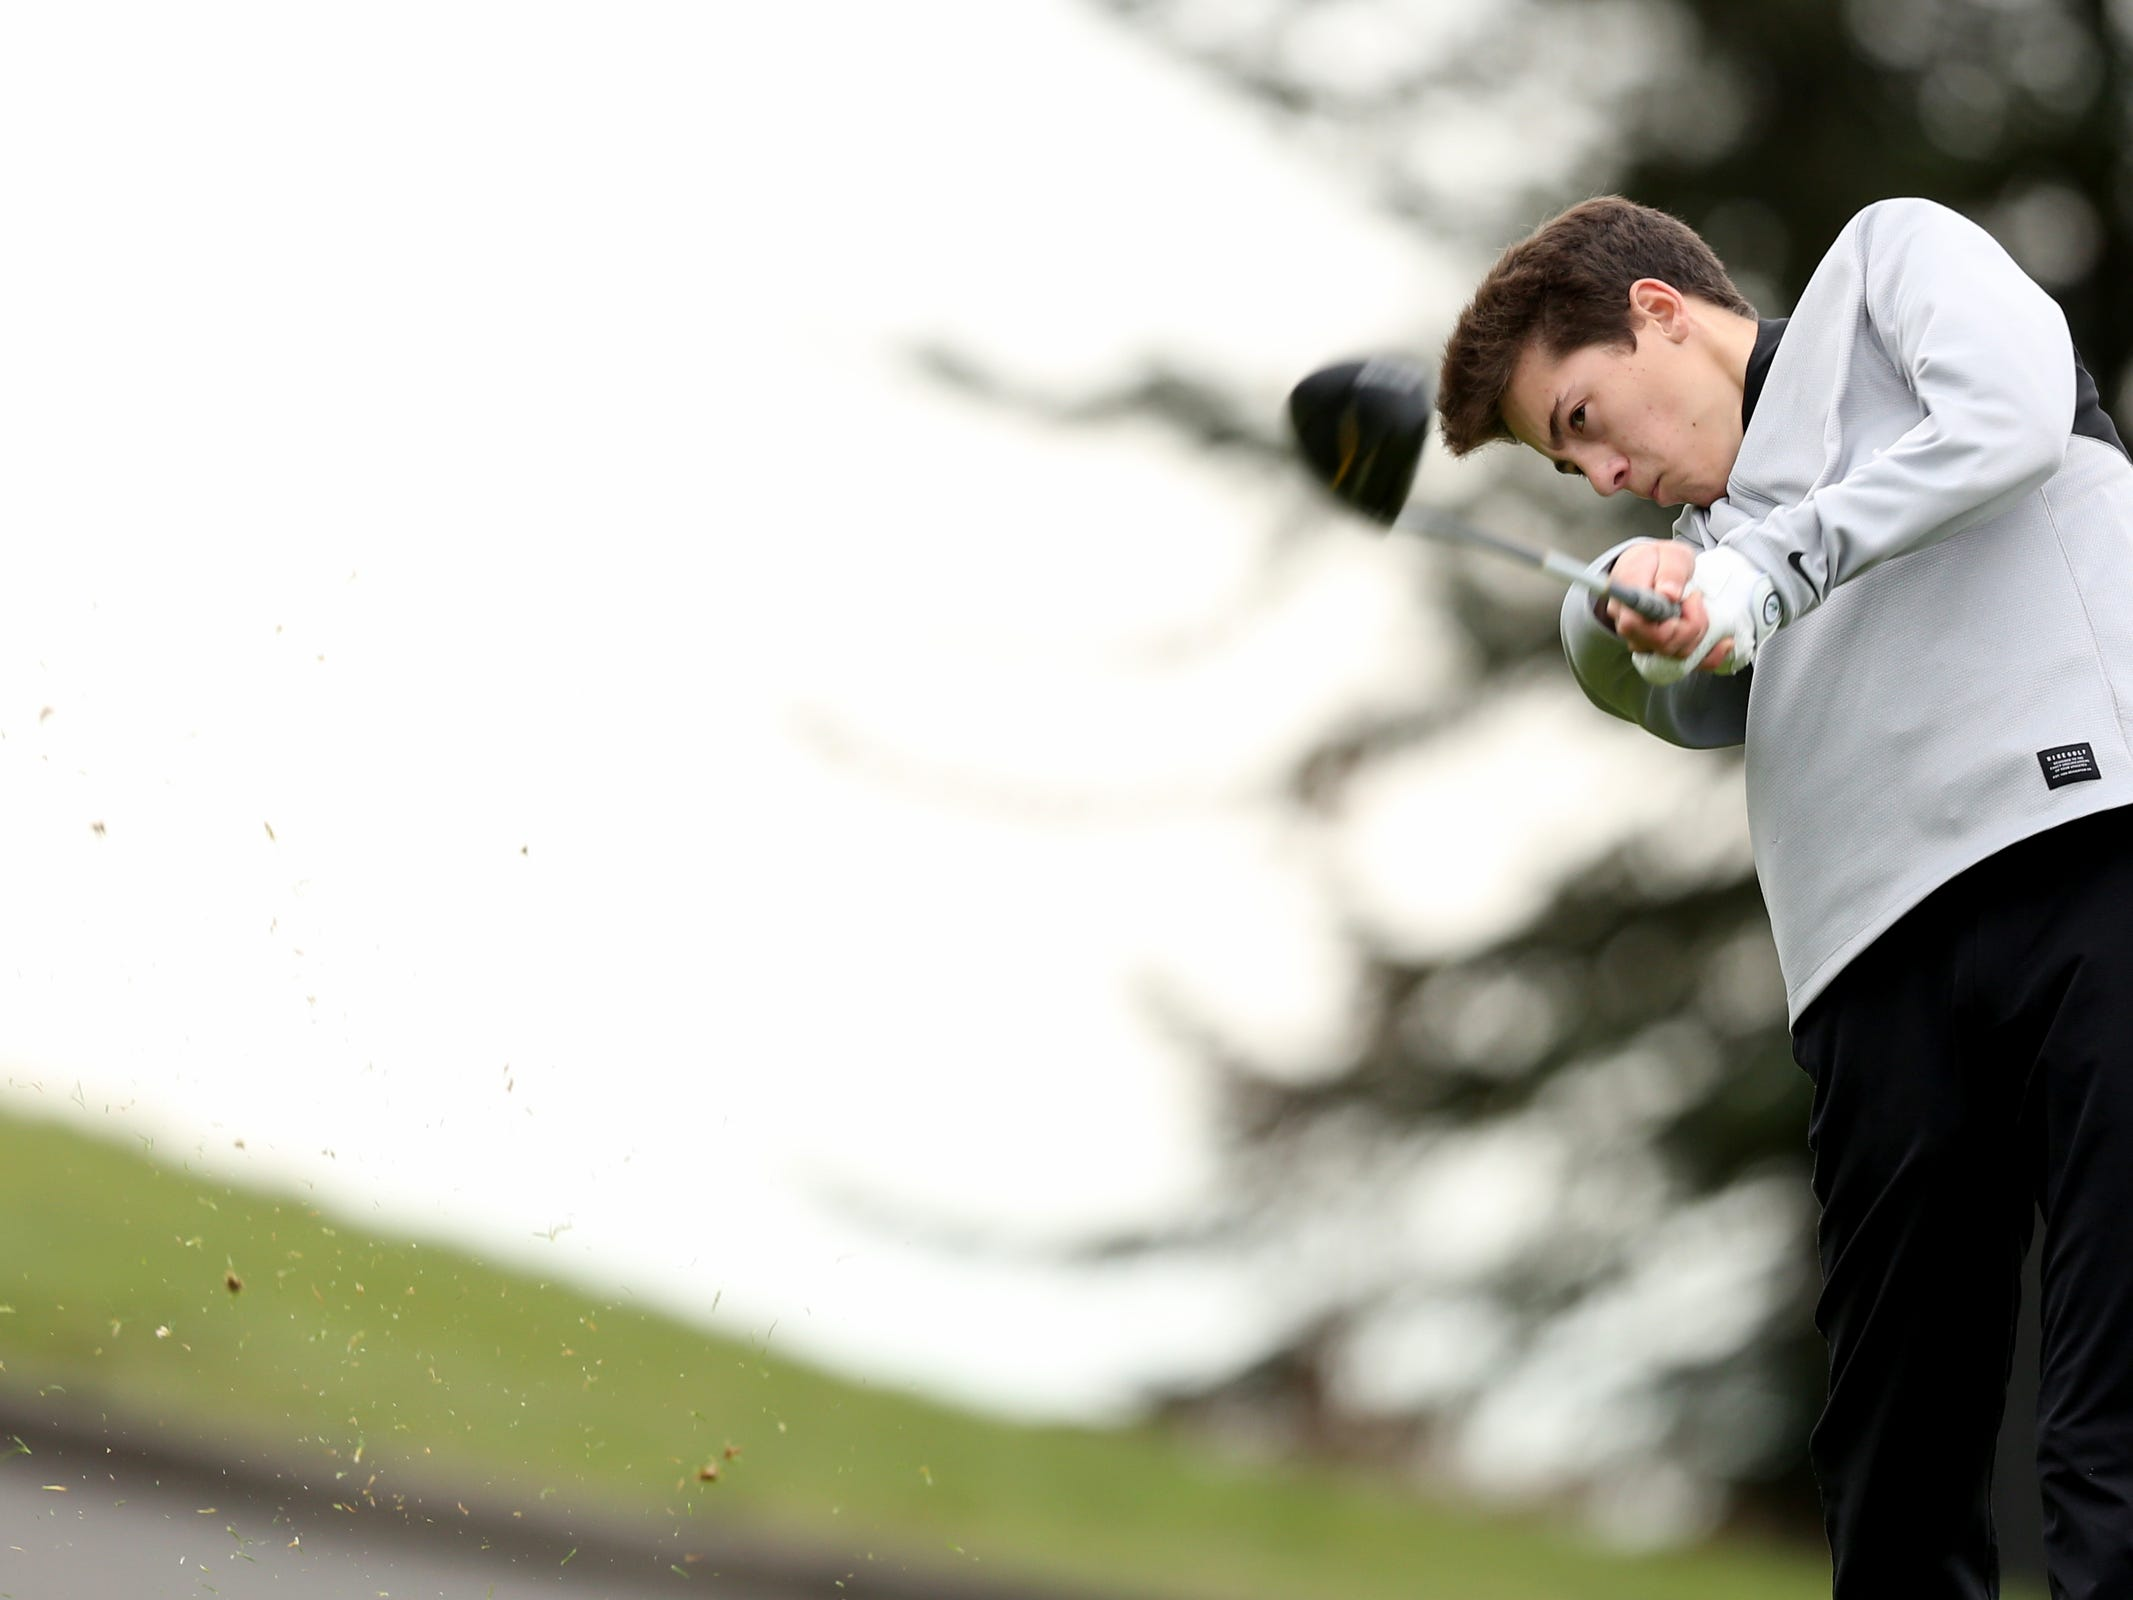 West Salem's Lance McClung tees off during a Mountain Valley Conference league high school golf match at Creekside Golf Club in Salem on April 15, 2019.